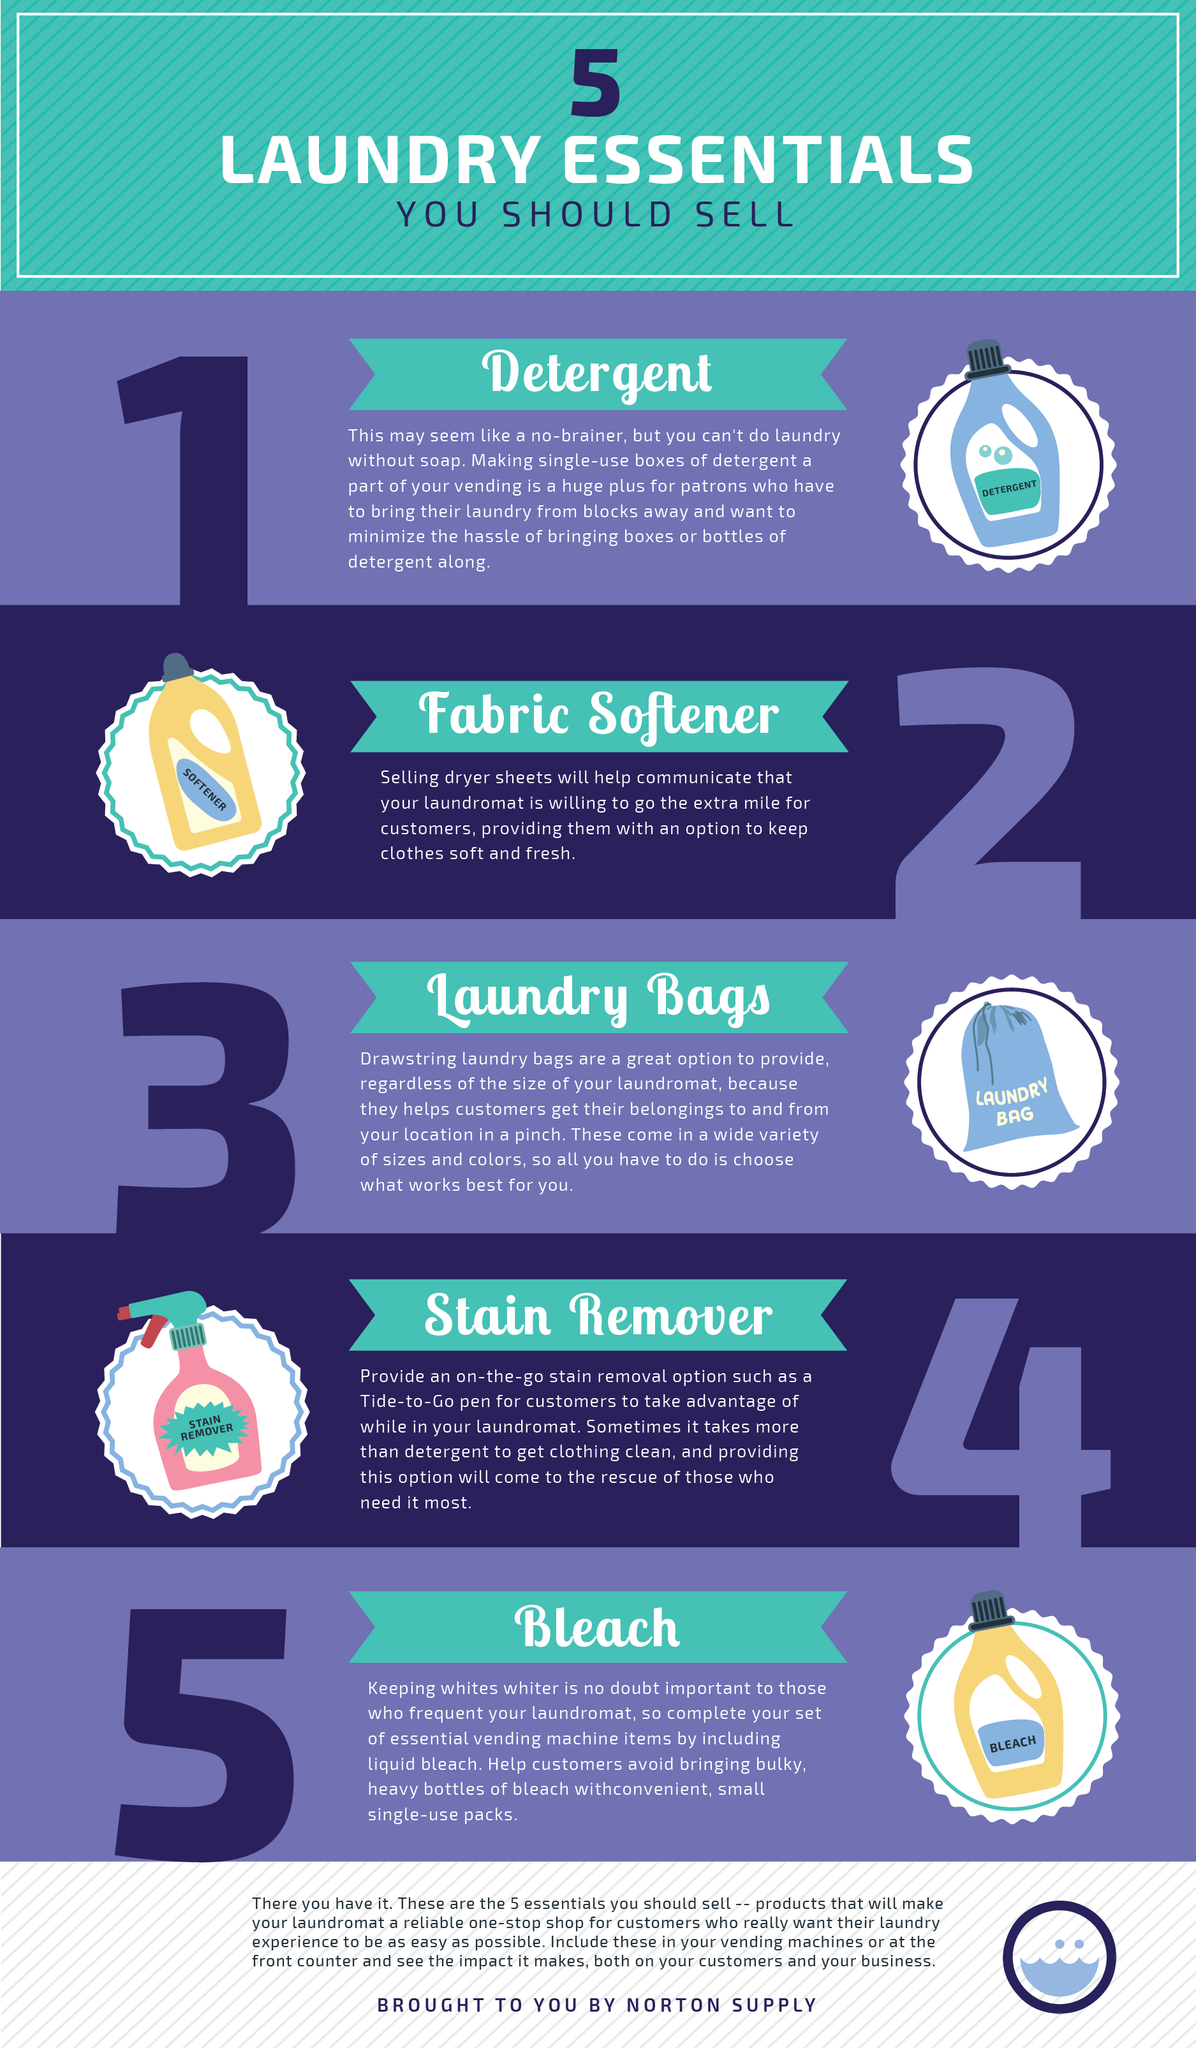 Free Infographic - 5 Laundry Essentials You Should Sell